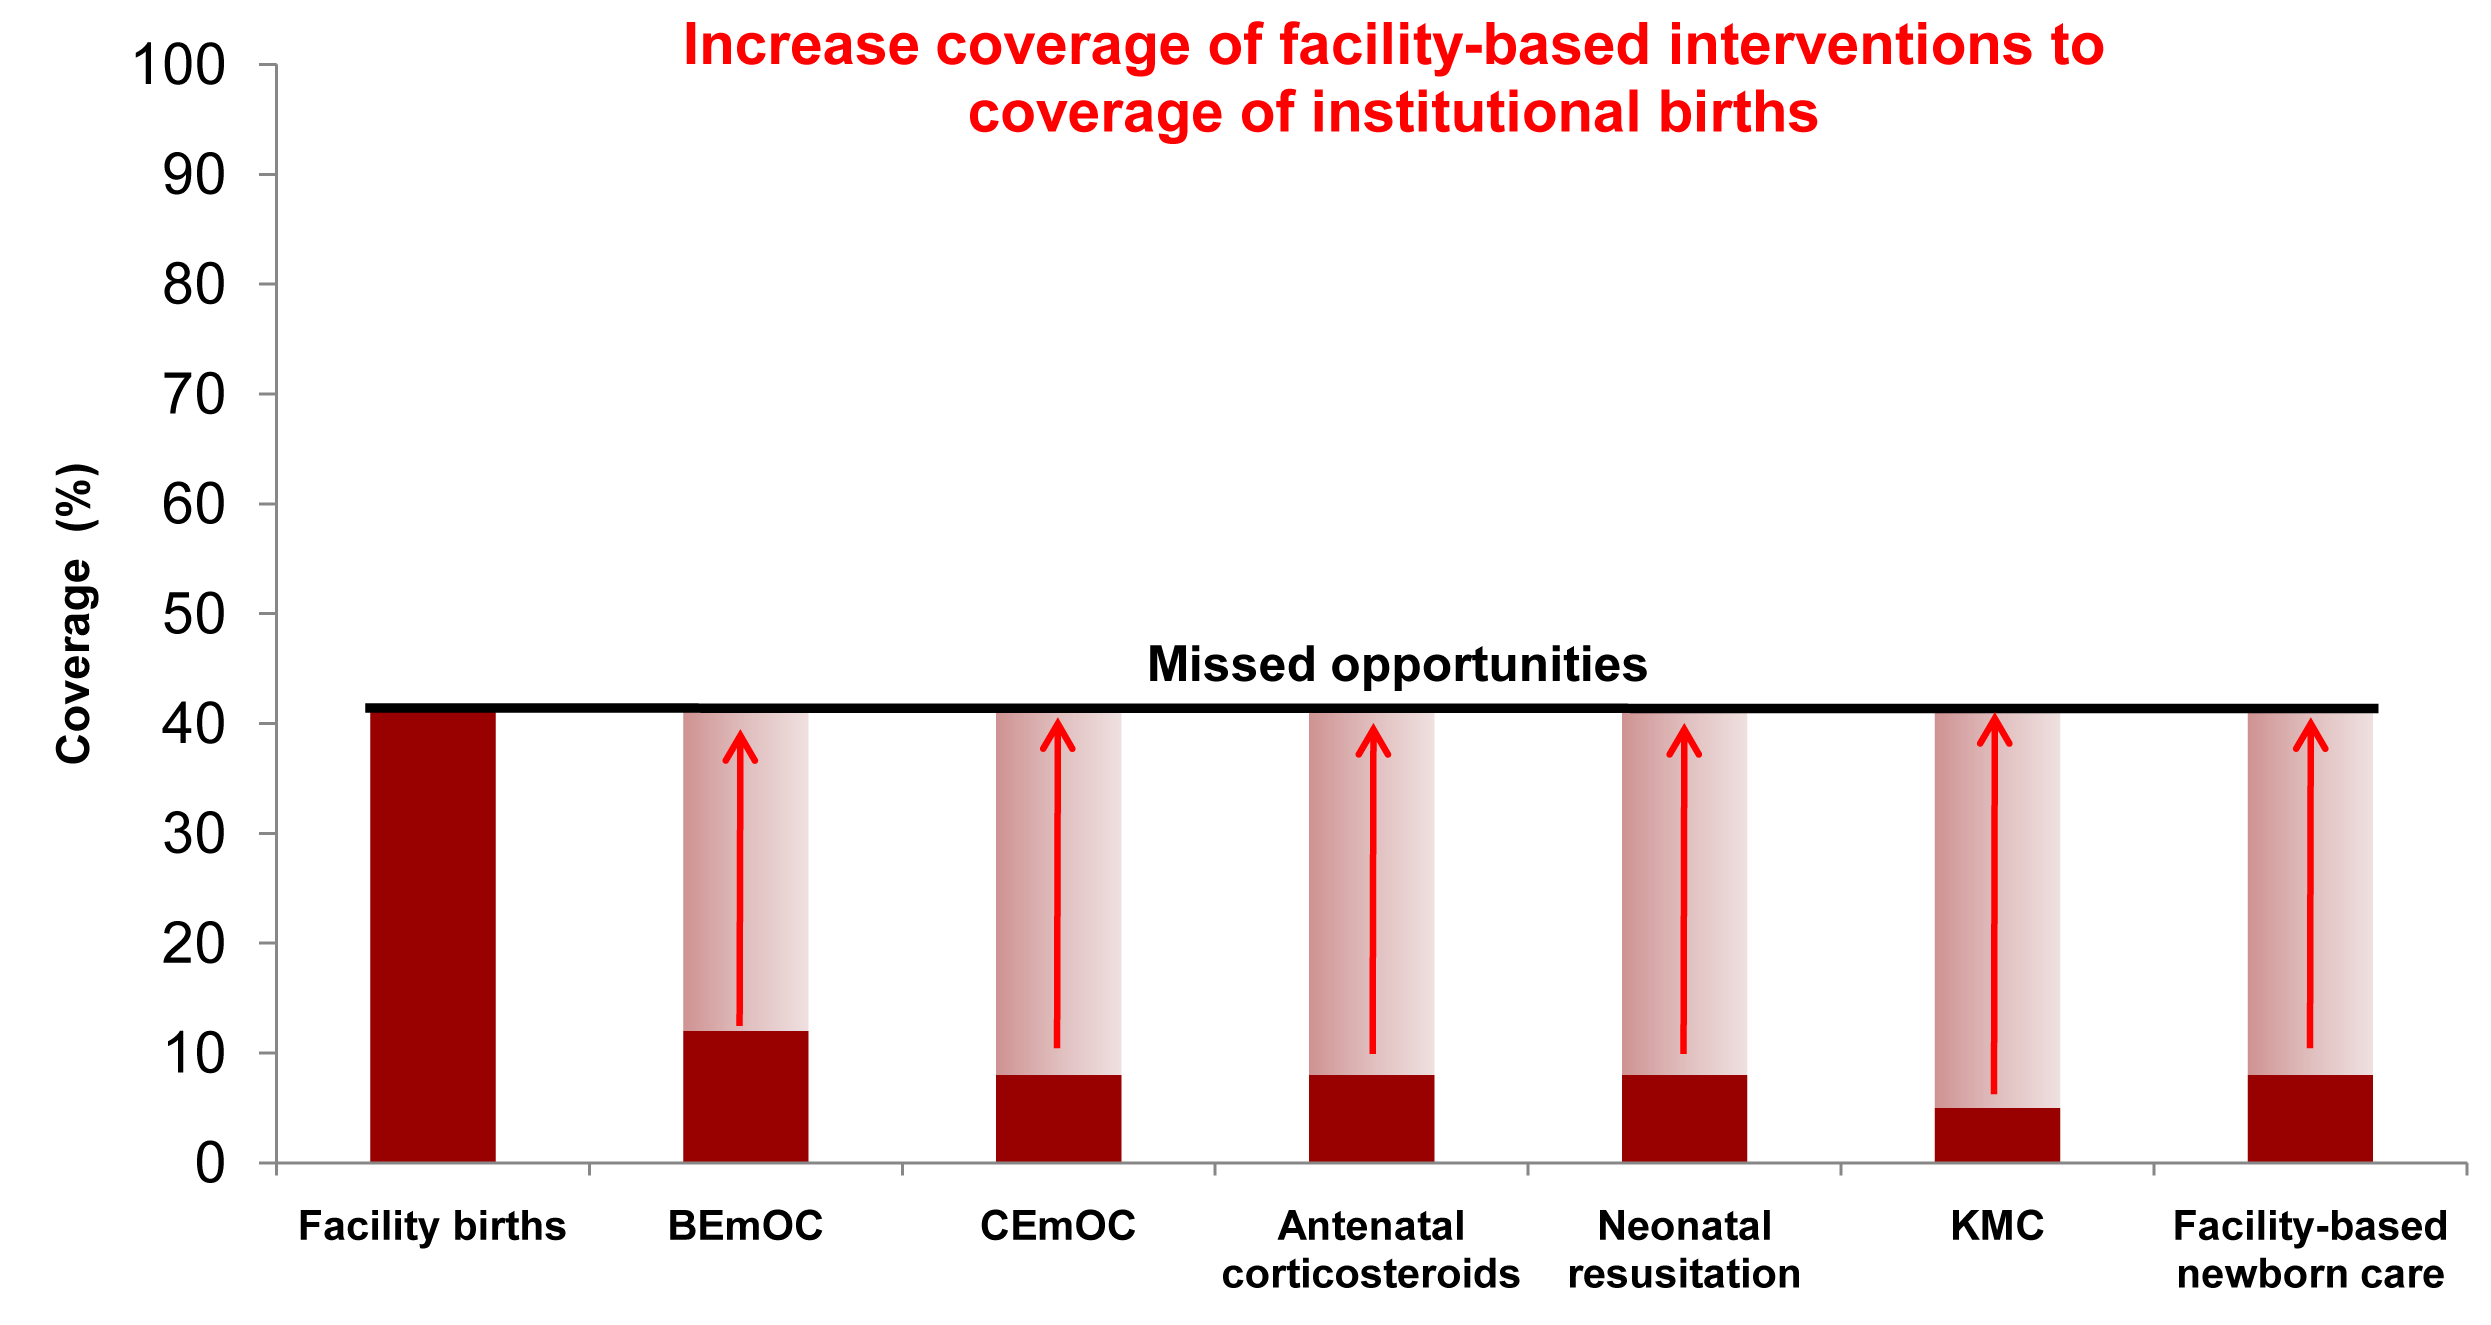 Achievable coverage increases by addressing the quality gap for facility births in Uganda.